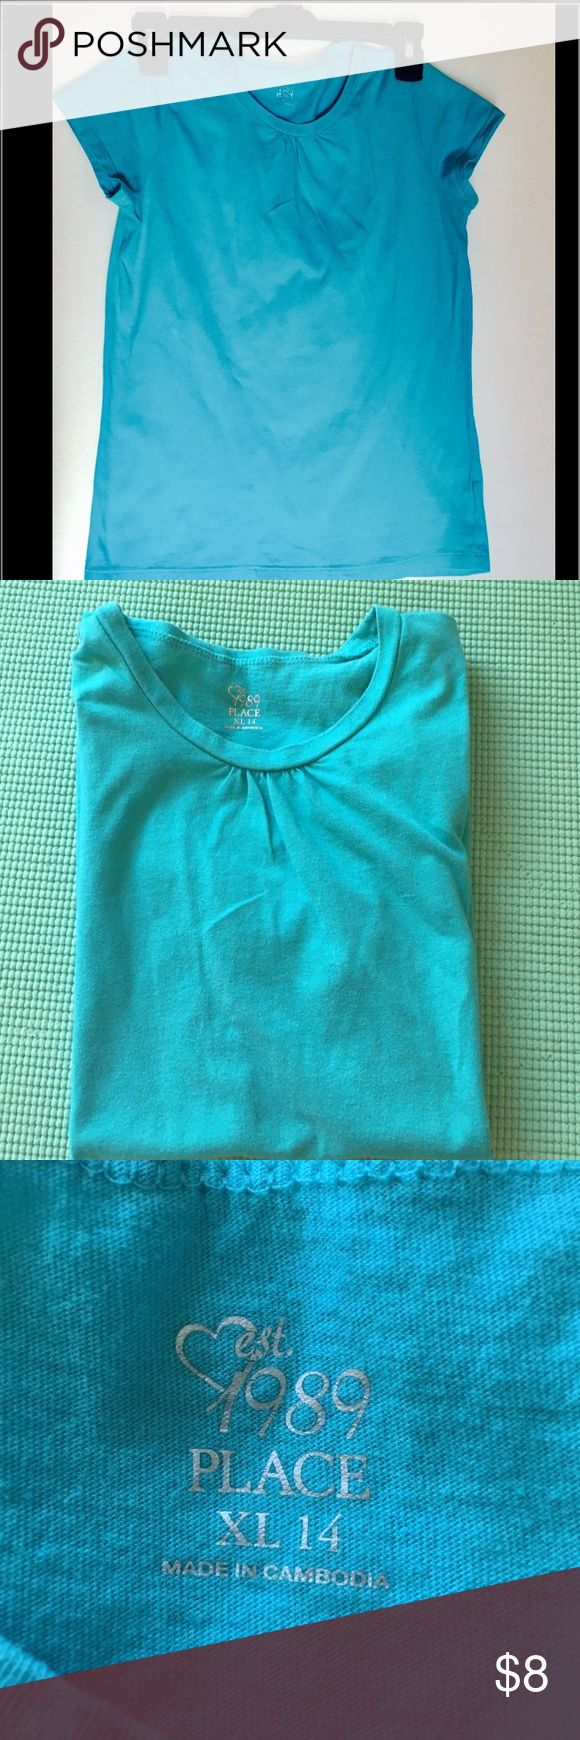 Children's Place 'Estd 1989' Turquoise Top Turquoise Top for girls Children's Place Shirts & Tops Tees - Short Sleeve